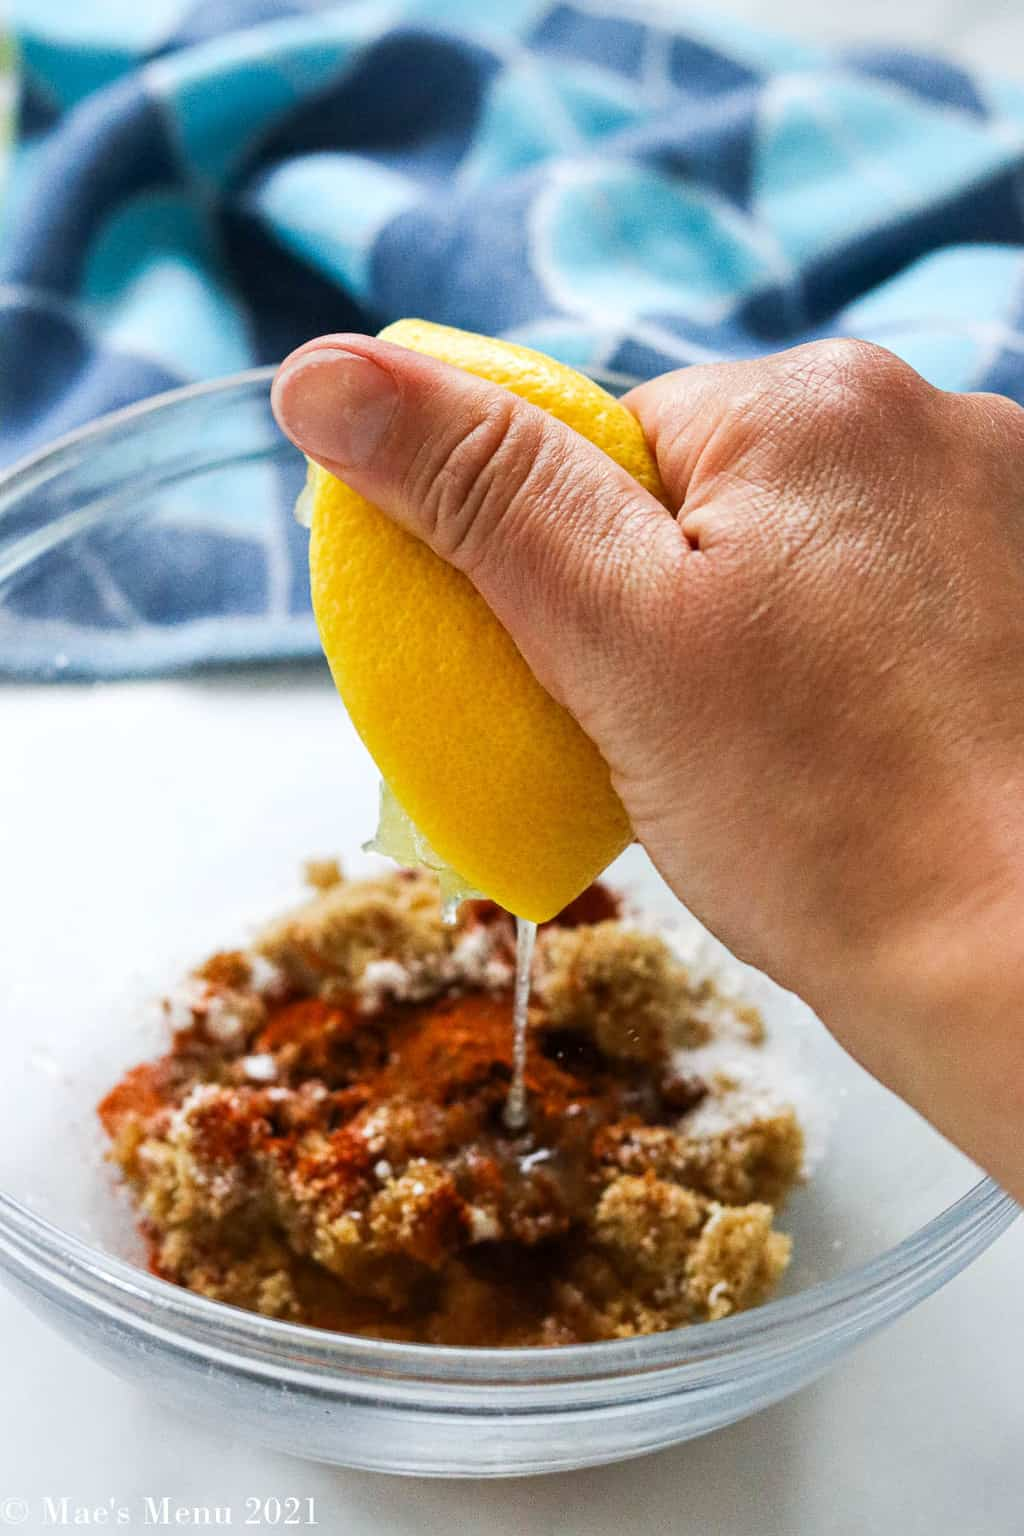 Squeezing lemon over the small bowl of brown sugar and spices